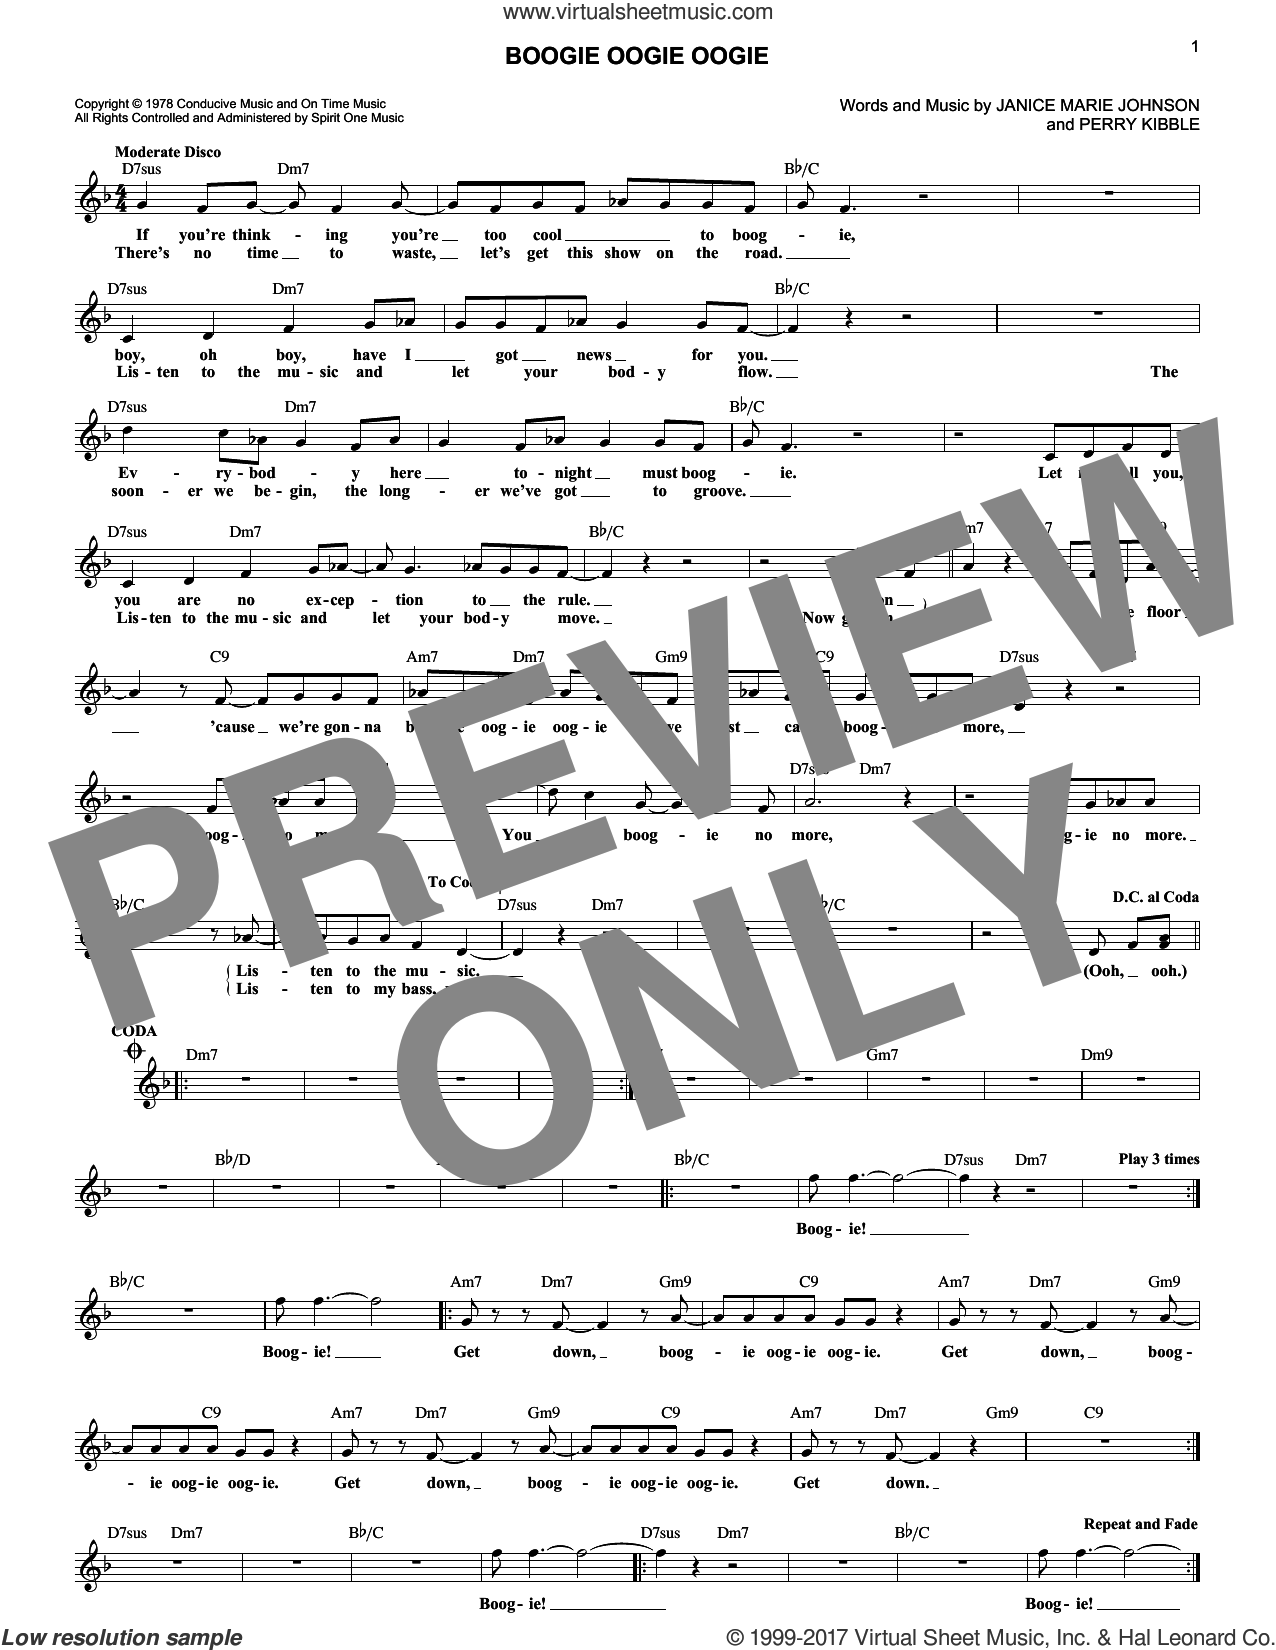 Boogie Oogie Oogie sheet music for voice and other instruments (fake book) by A Taste Of Honey, Janice Marie Johnson and Perry Kibble, intermediate skill level